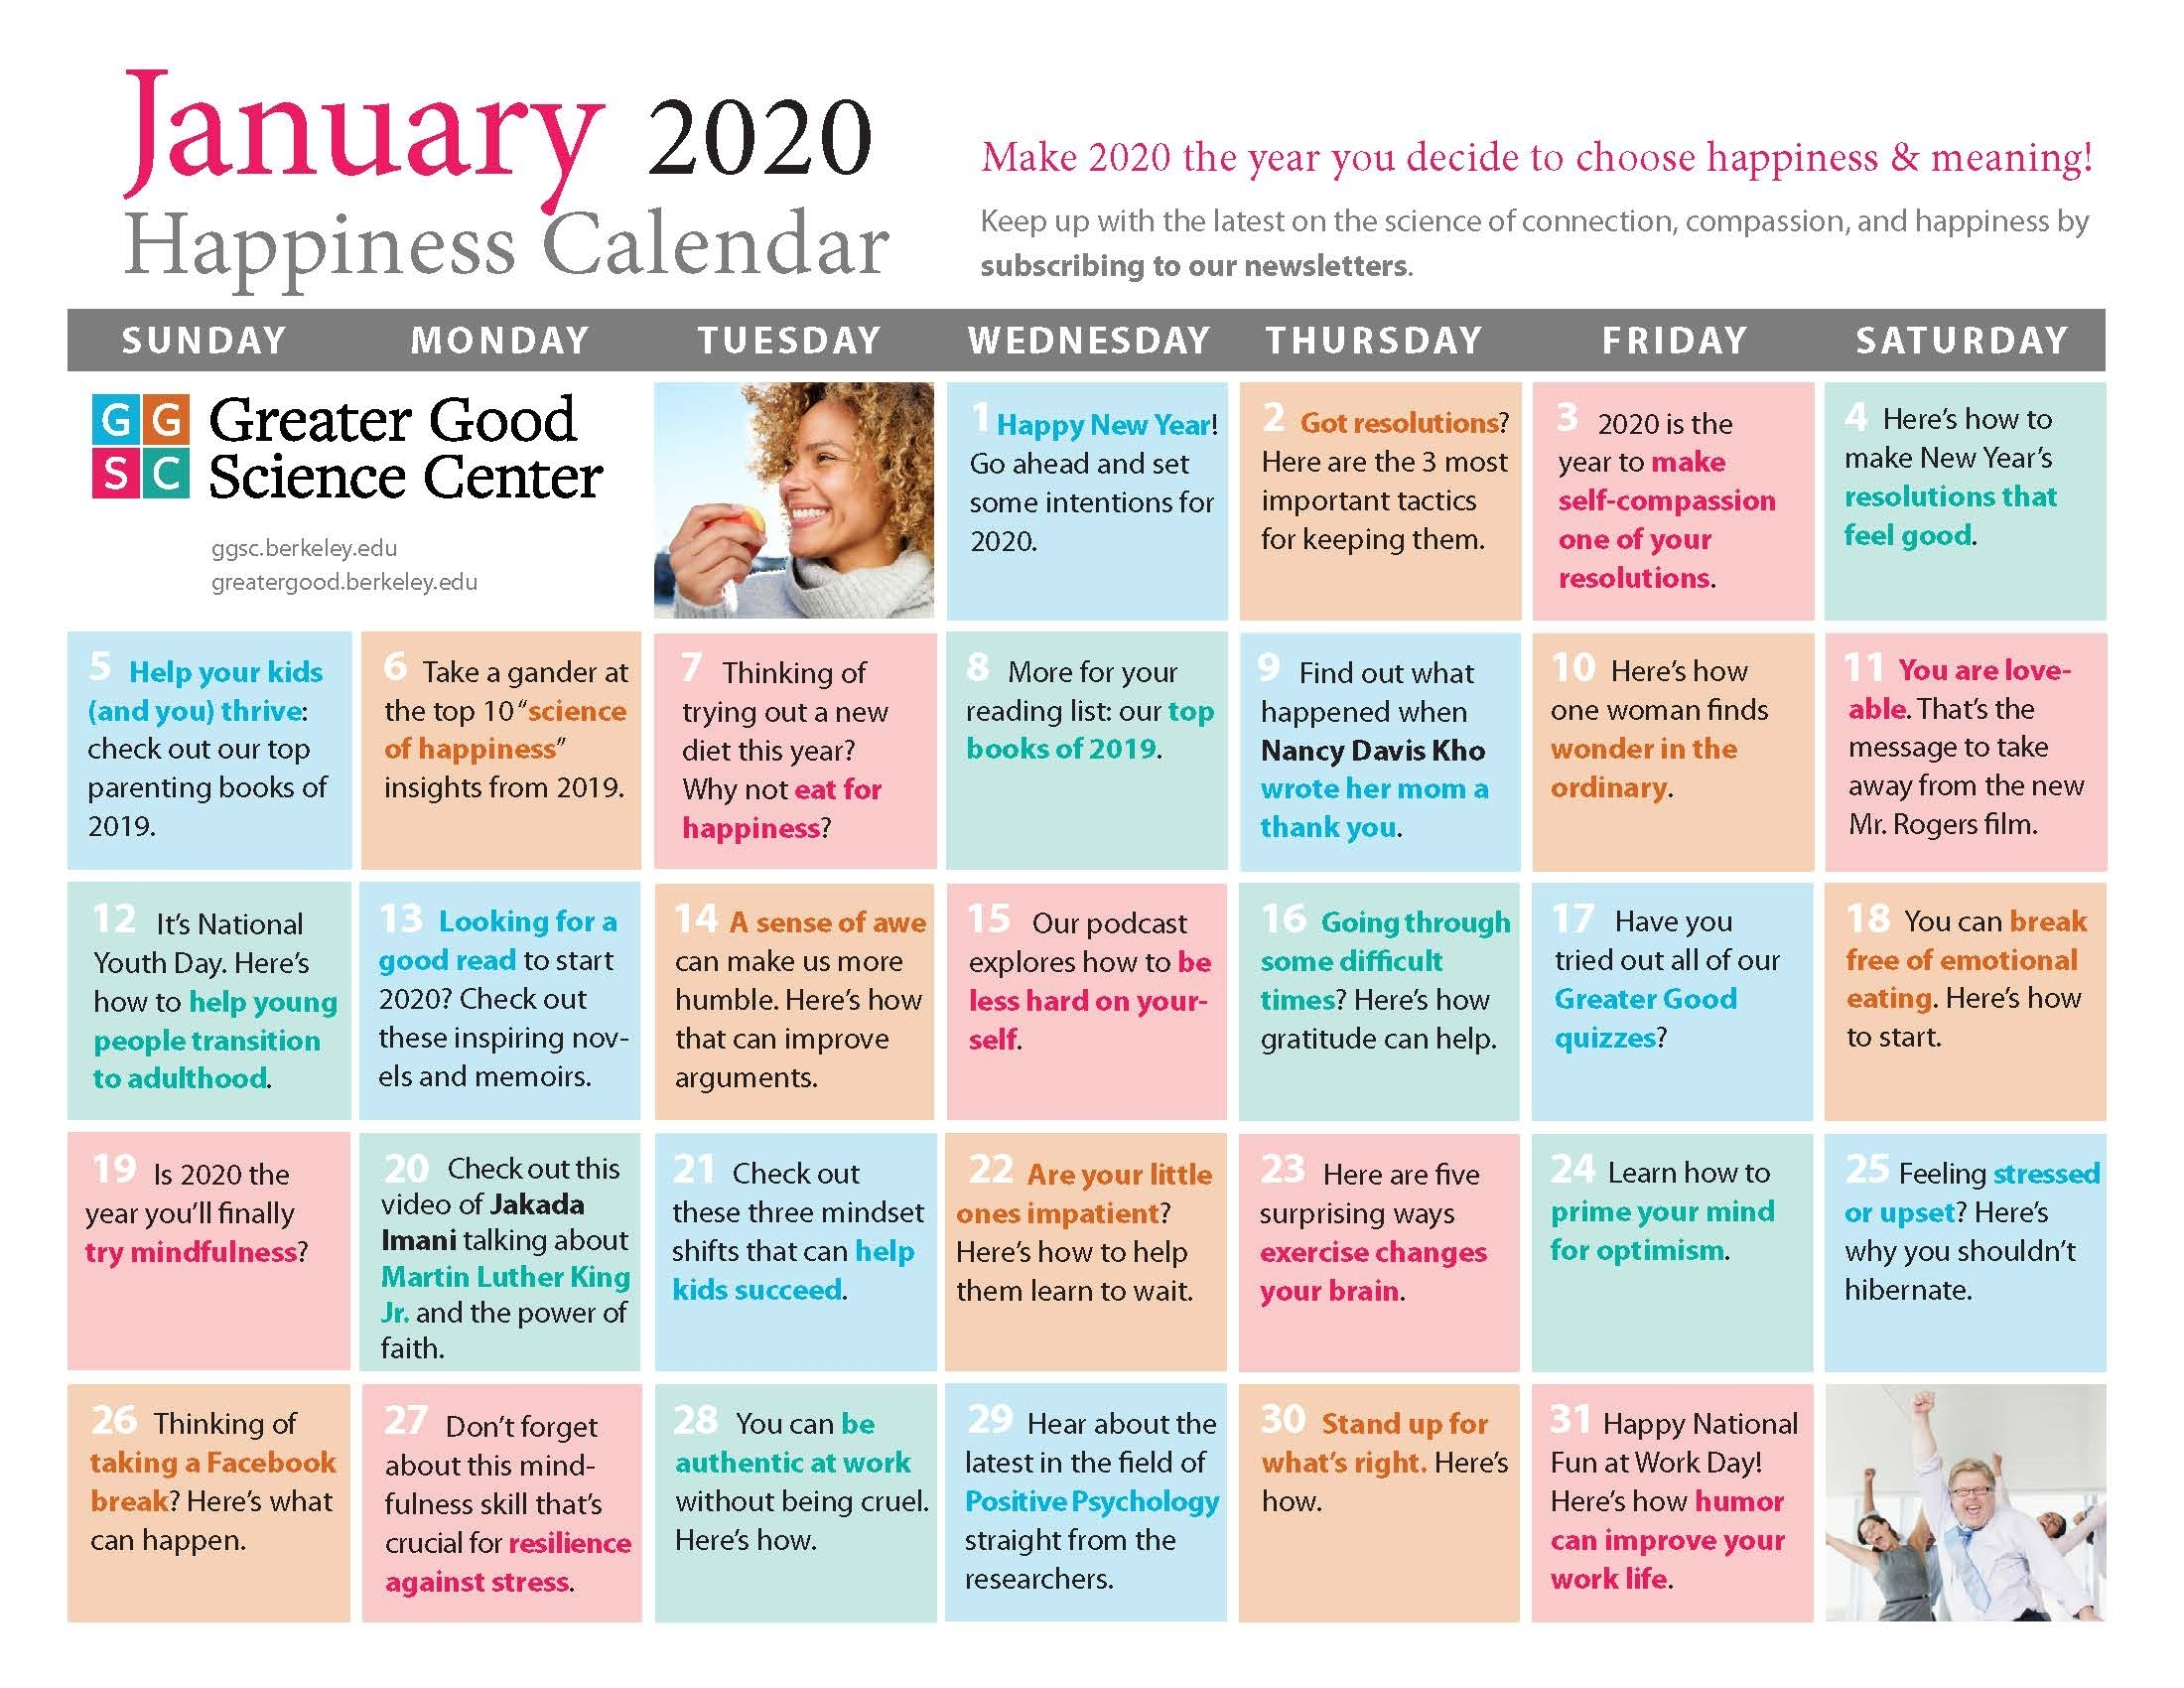 Your Happiness Calendar For January 2020